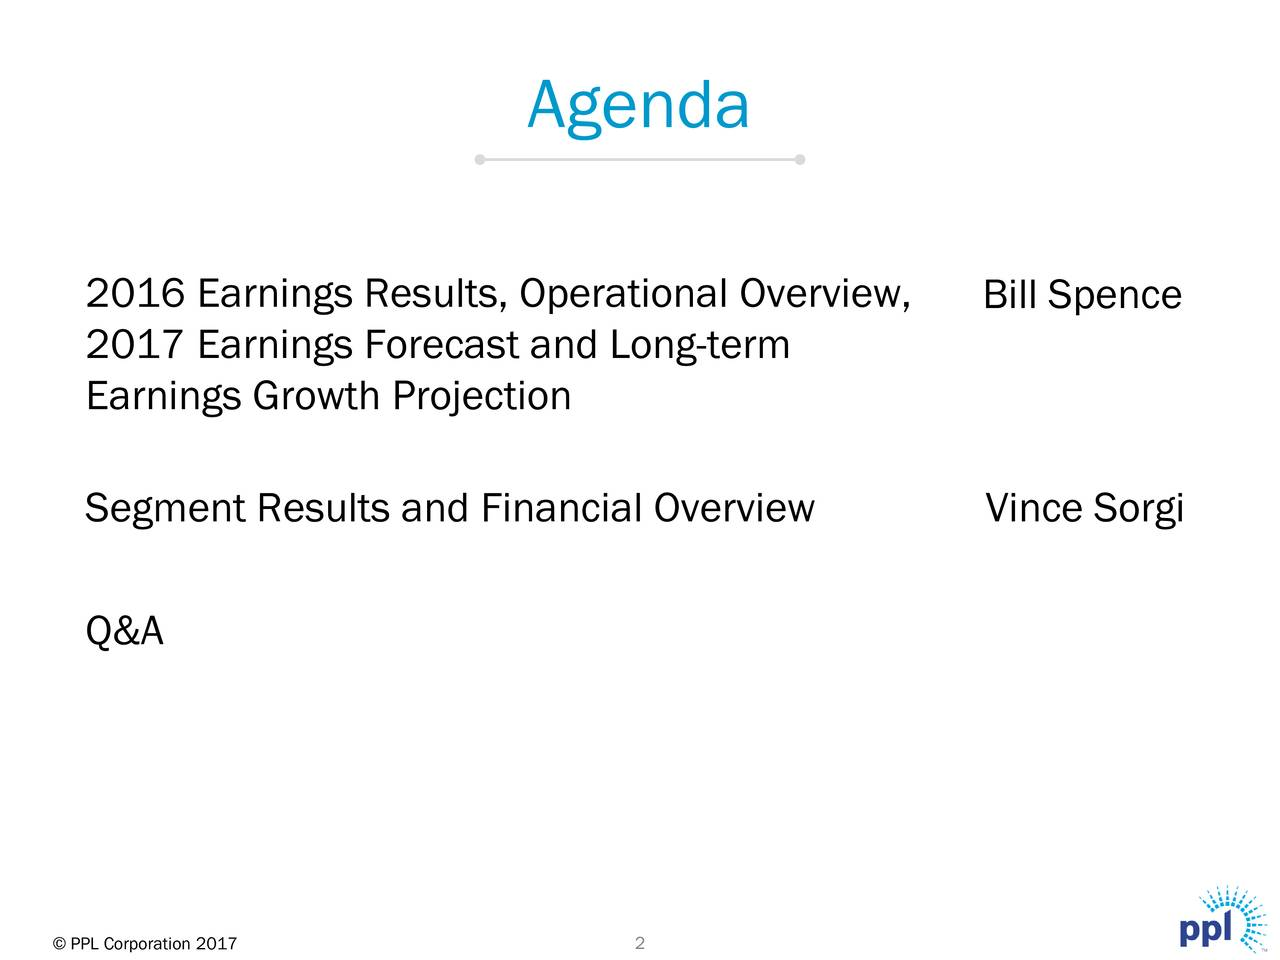 2016 Earnings Results, Operational Overview, Bill Spence 2017 Earnings Forecast and Long-term Earnings Growth Projection Segment Results and Financial Overview Vince Sorgi Q&A